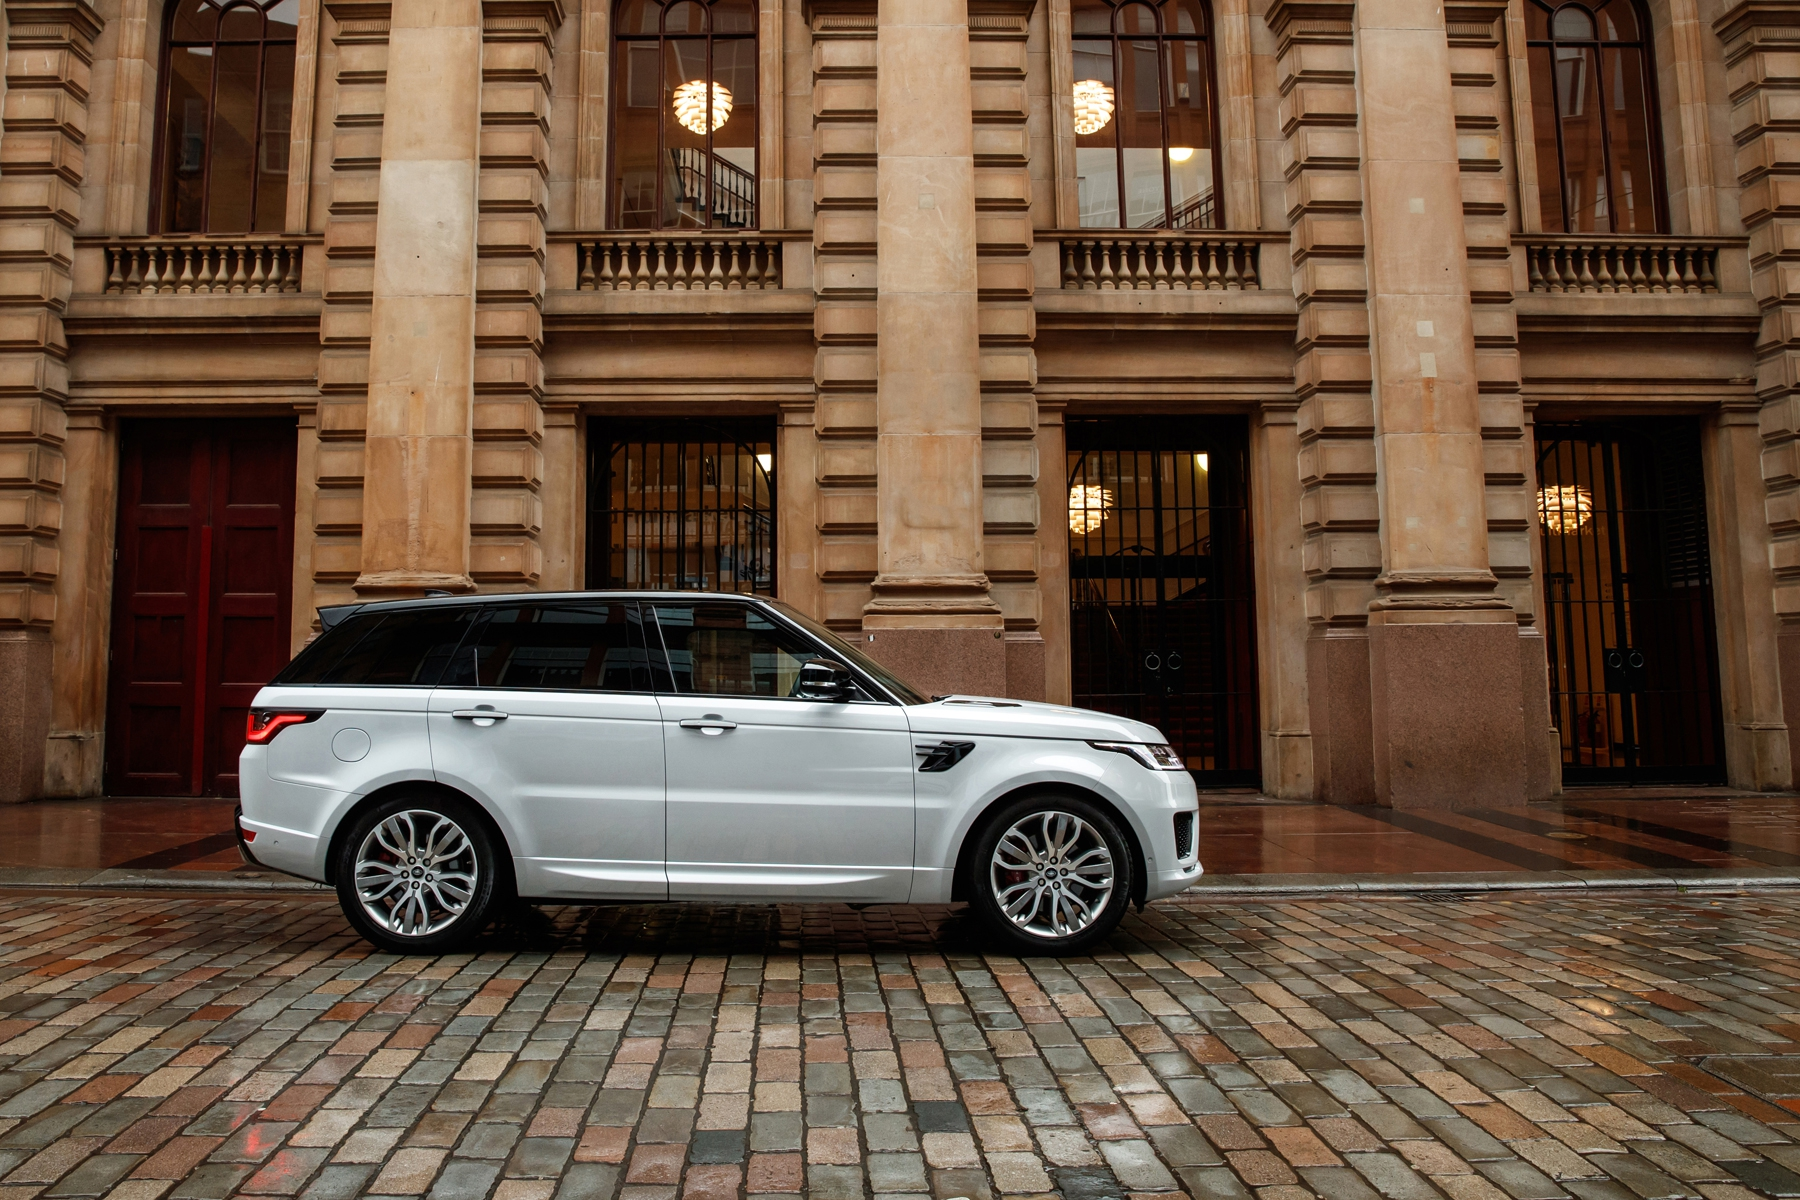 The 2021 Land Rover Range Rover